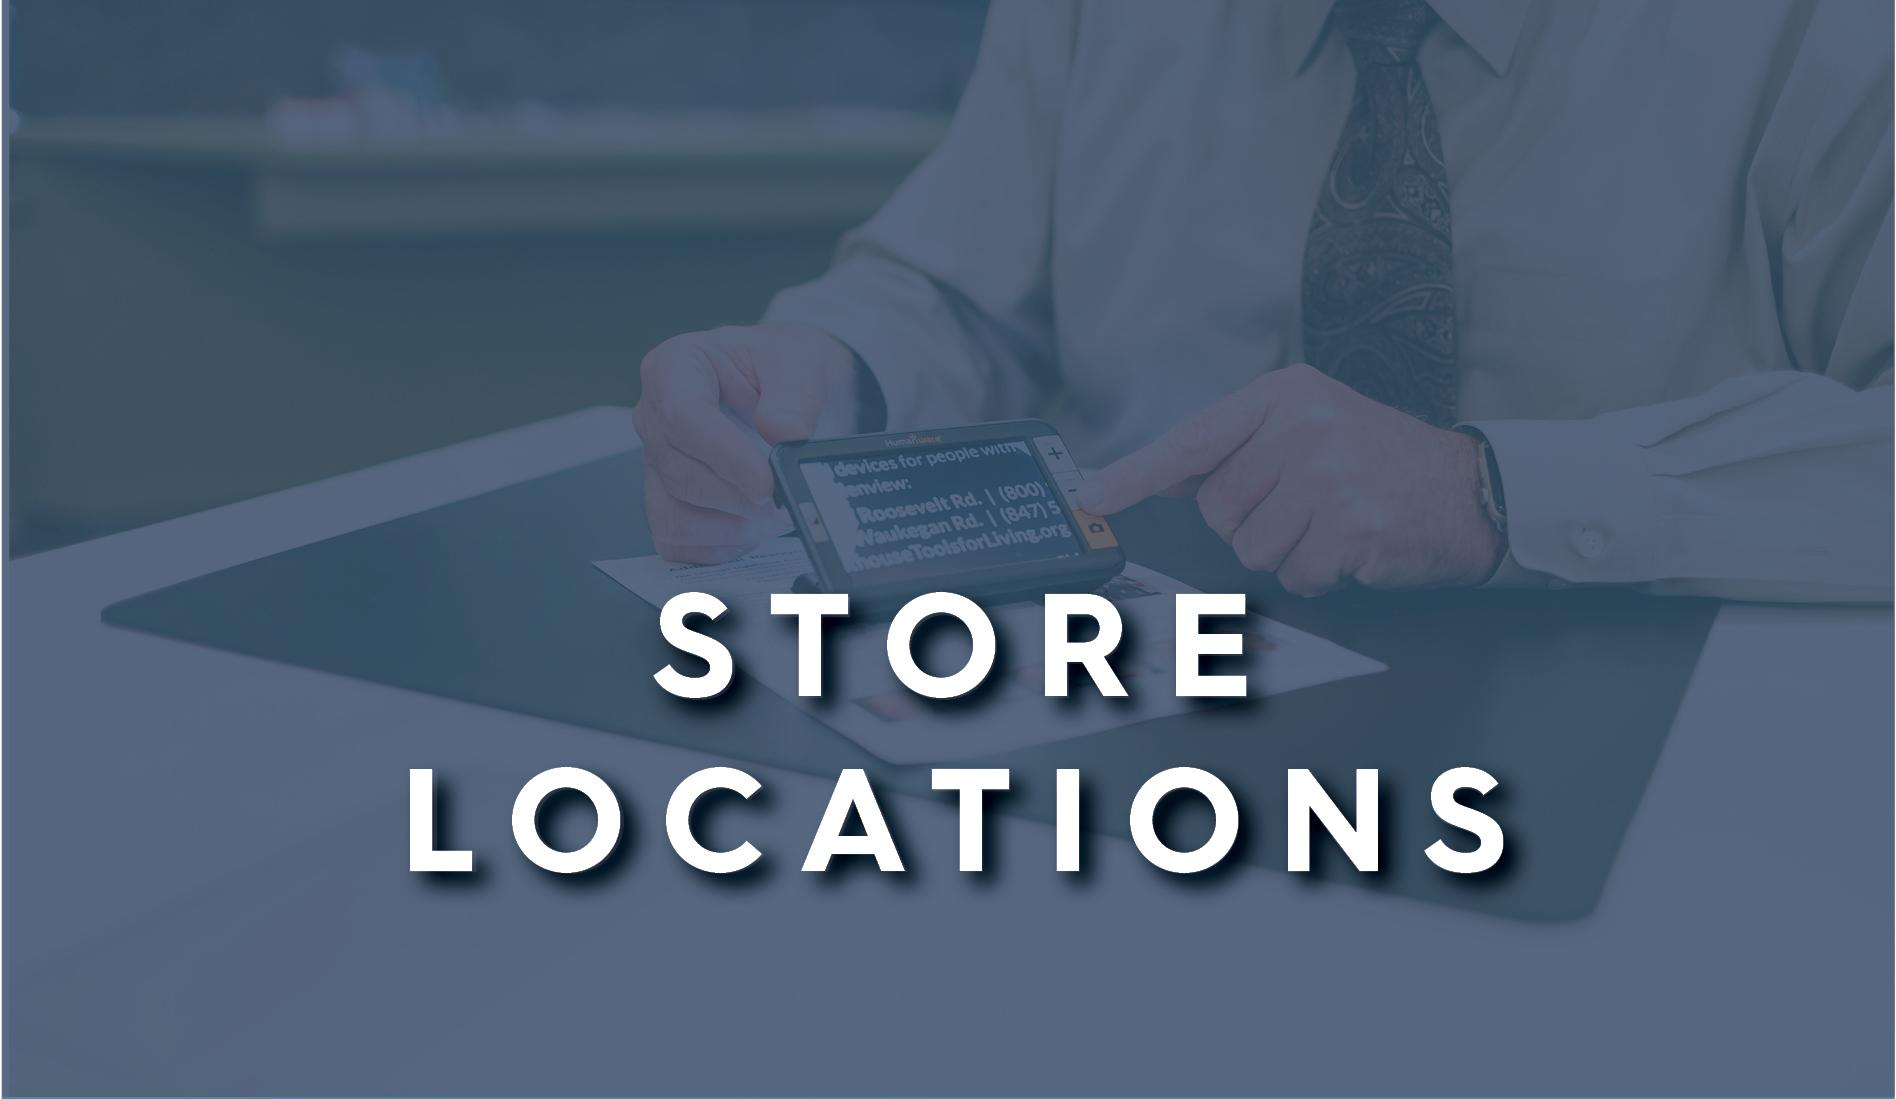 Store locations button